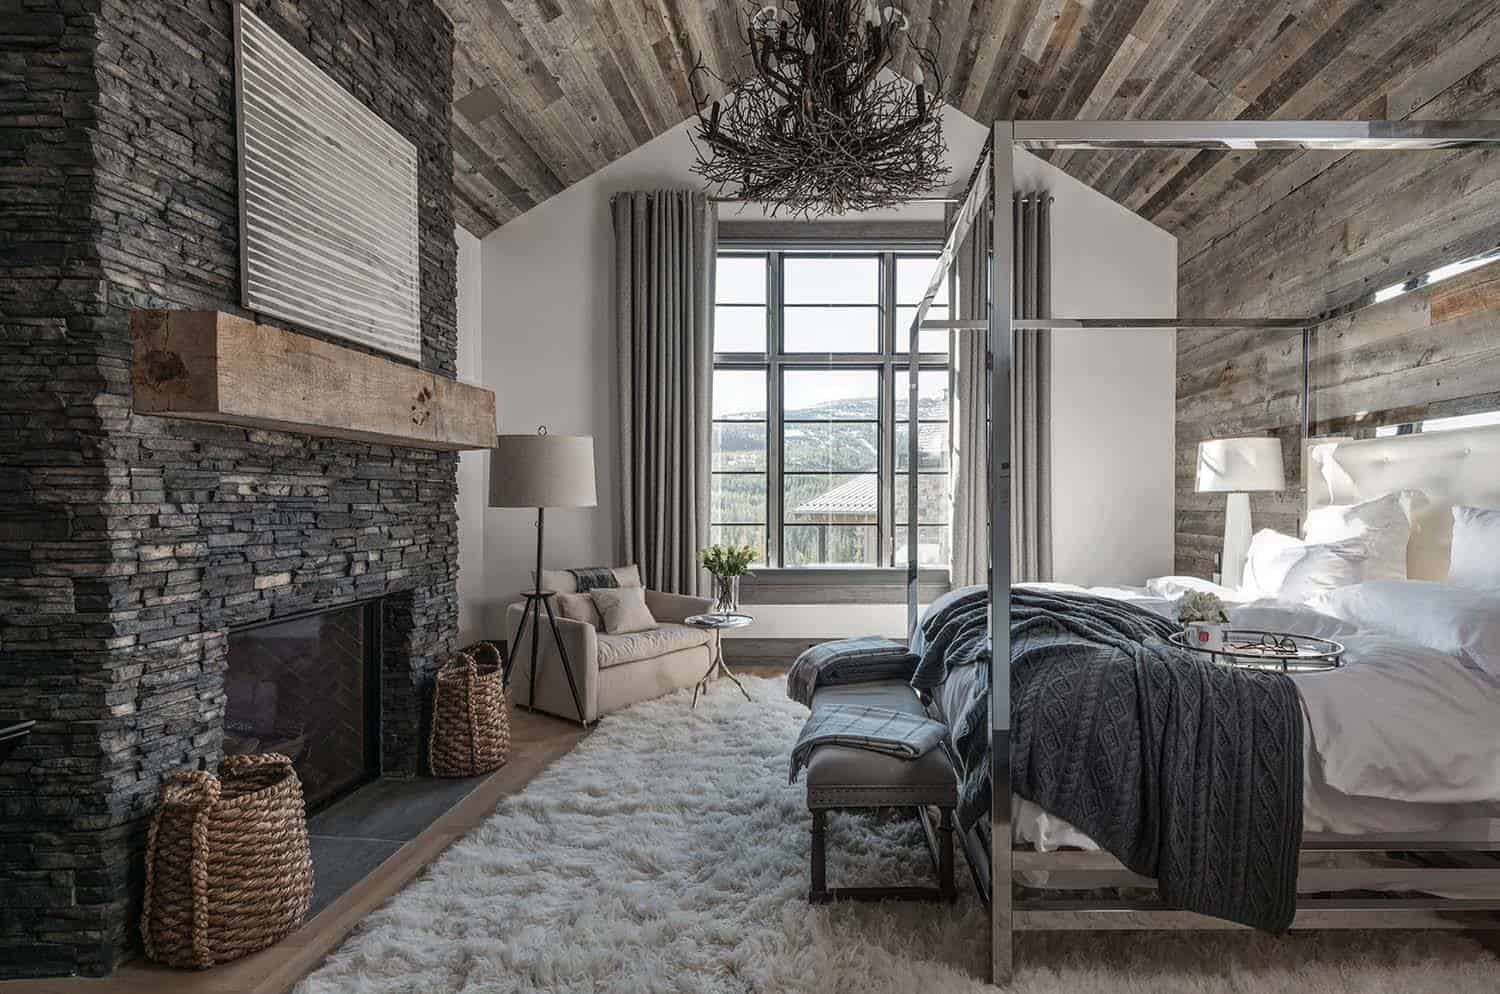 Rustic Mountain Chalet-Locati Architects-09-1 Kindesign